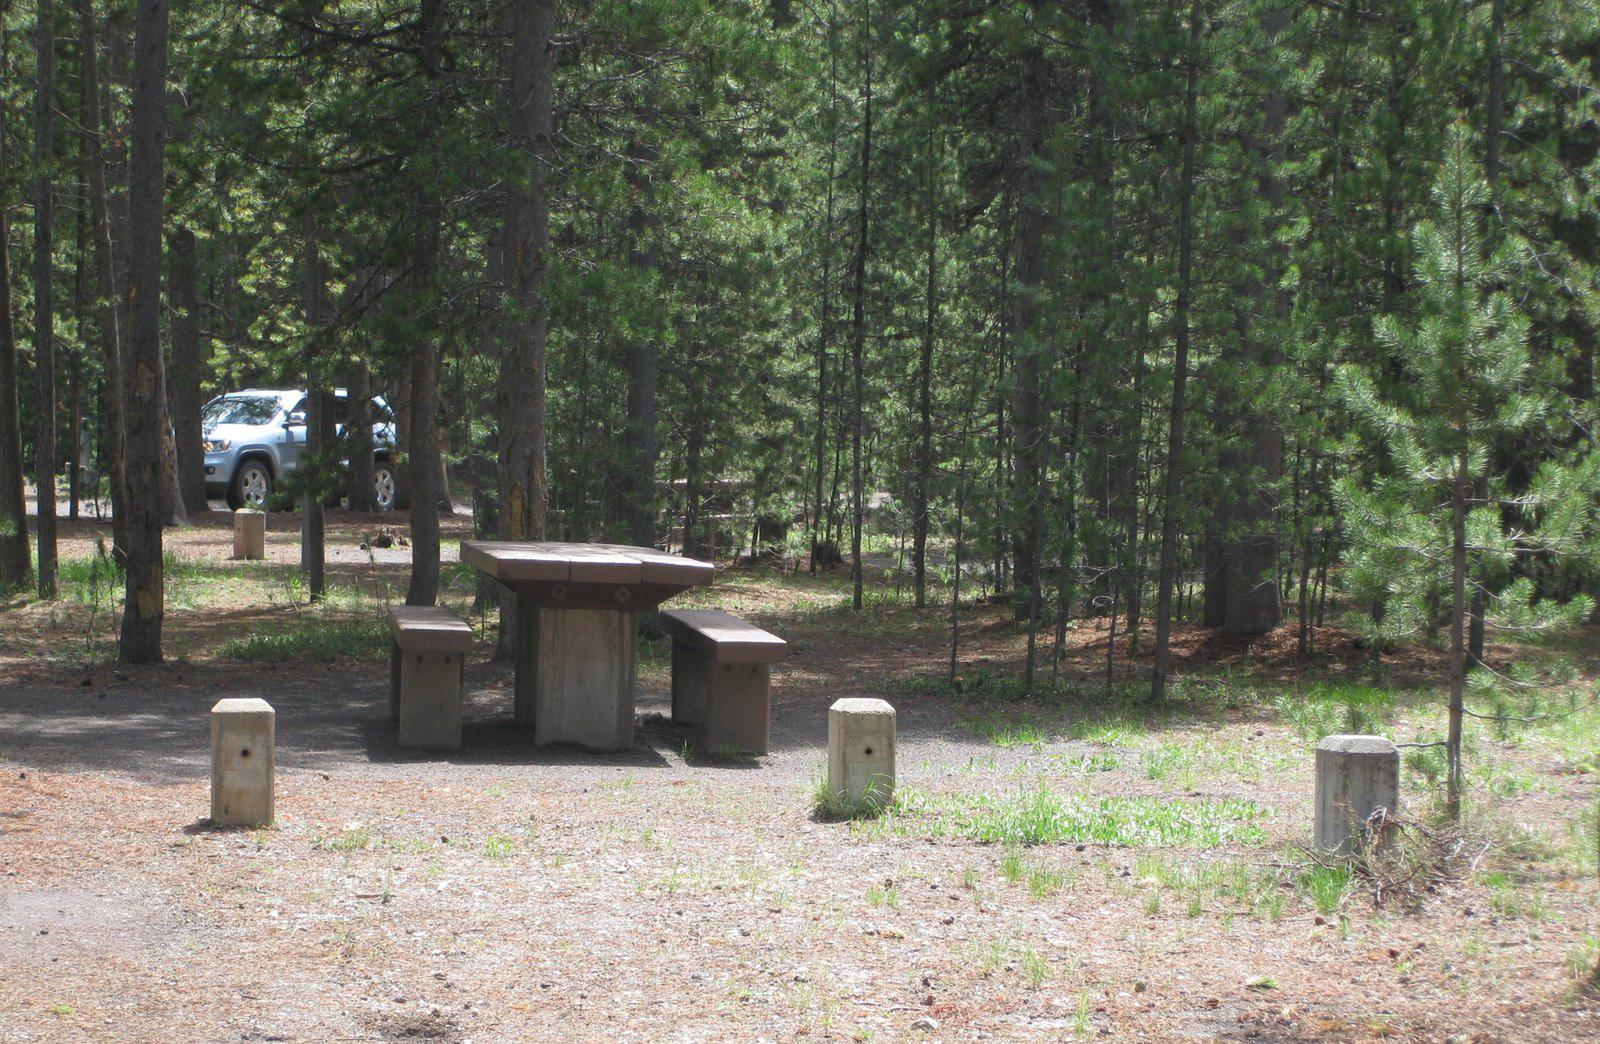 Site C26, surrounded by pine trees, picnic table & fire ringSite C26